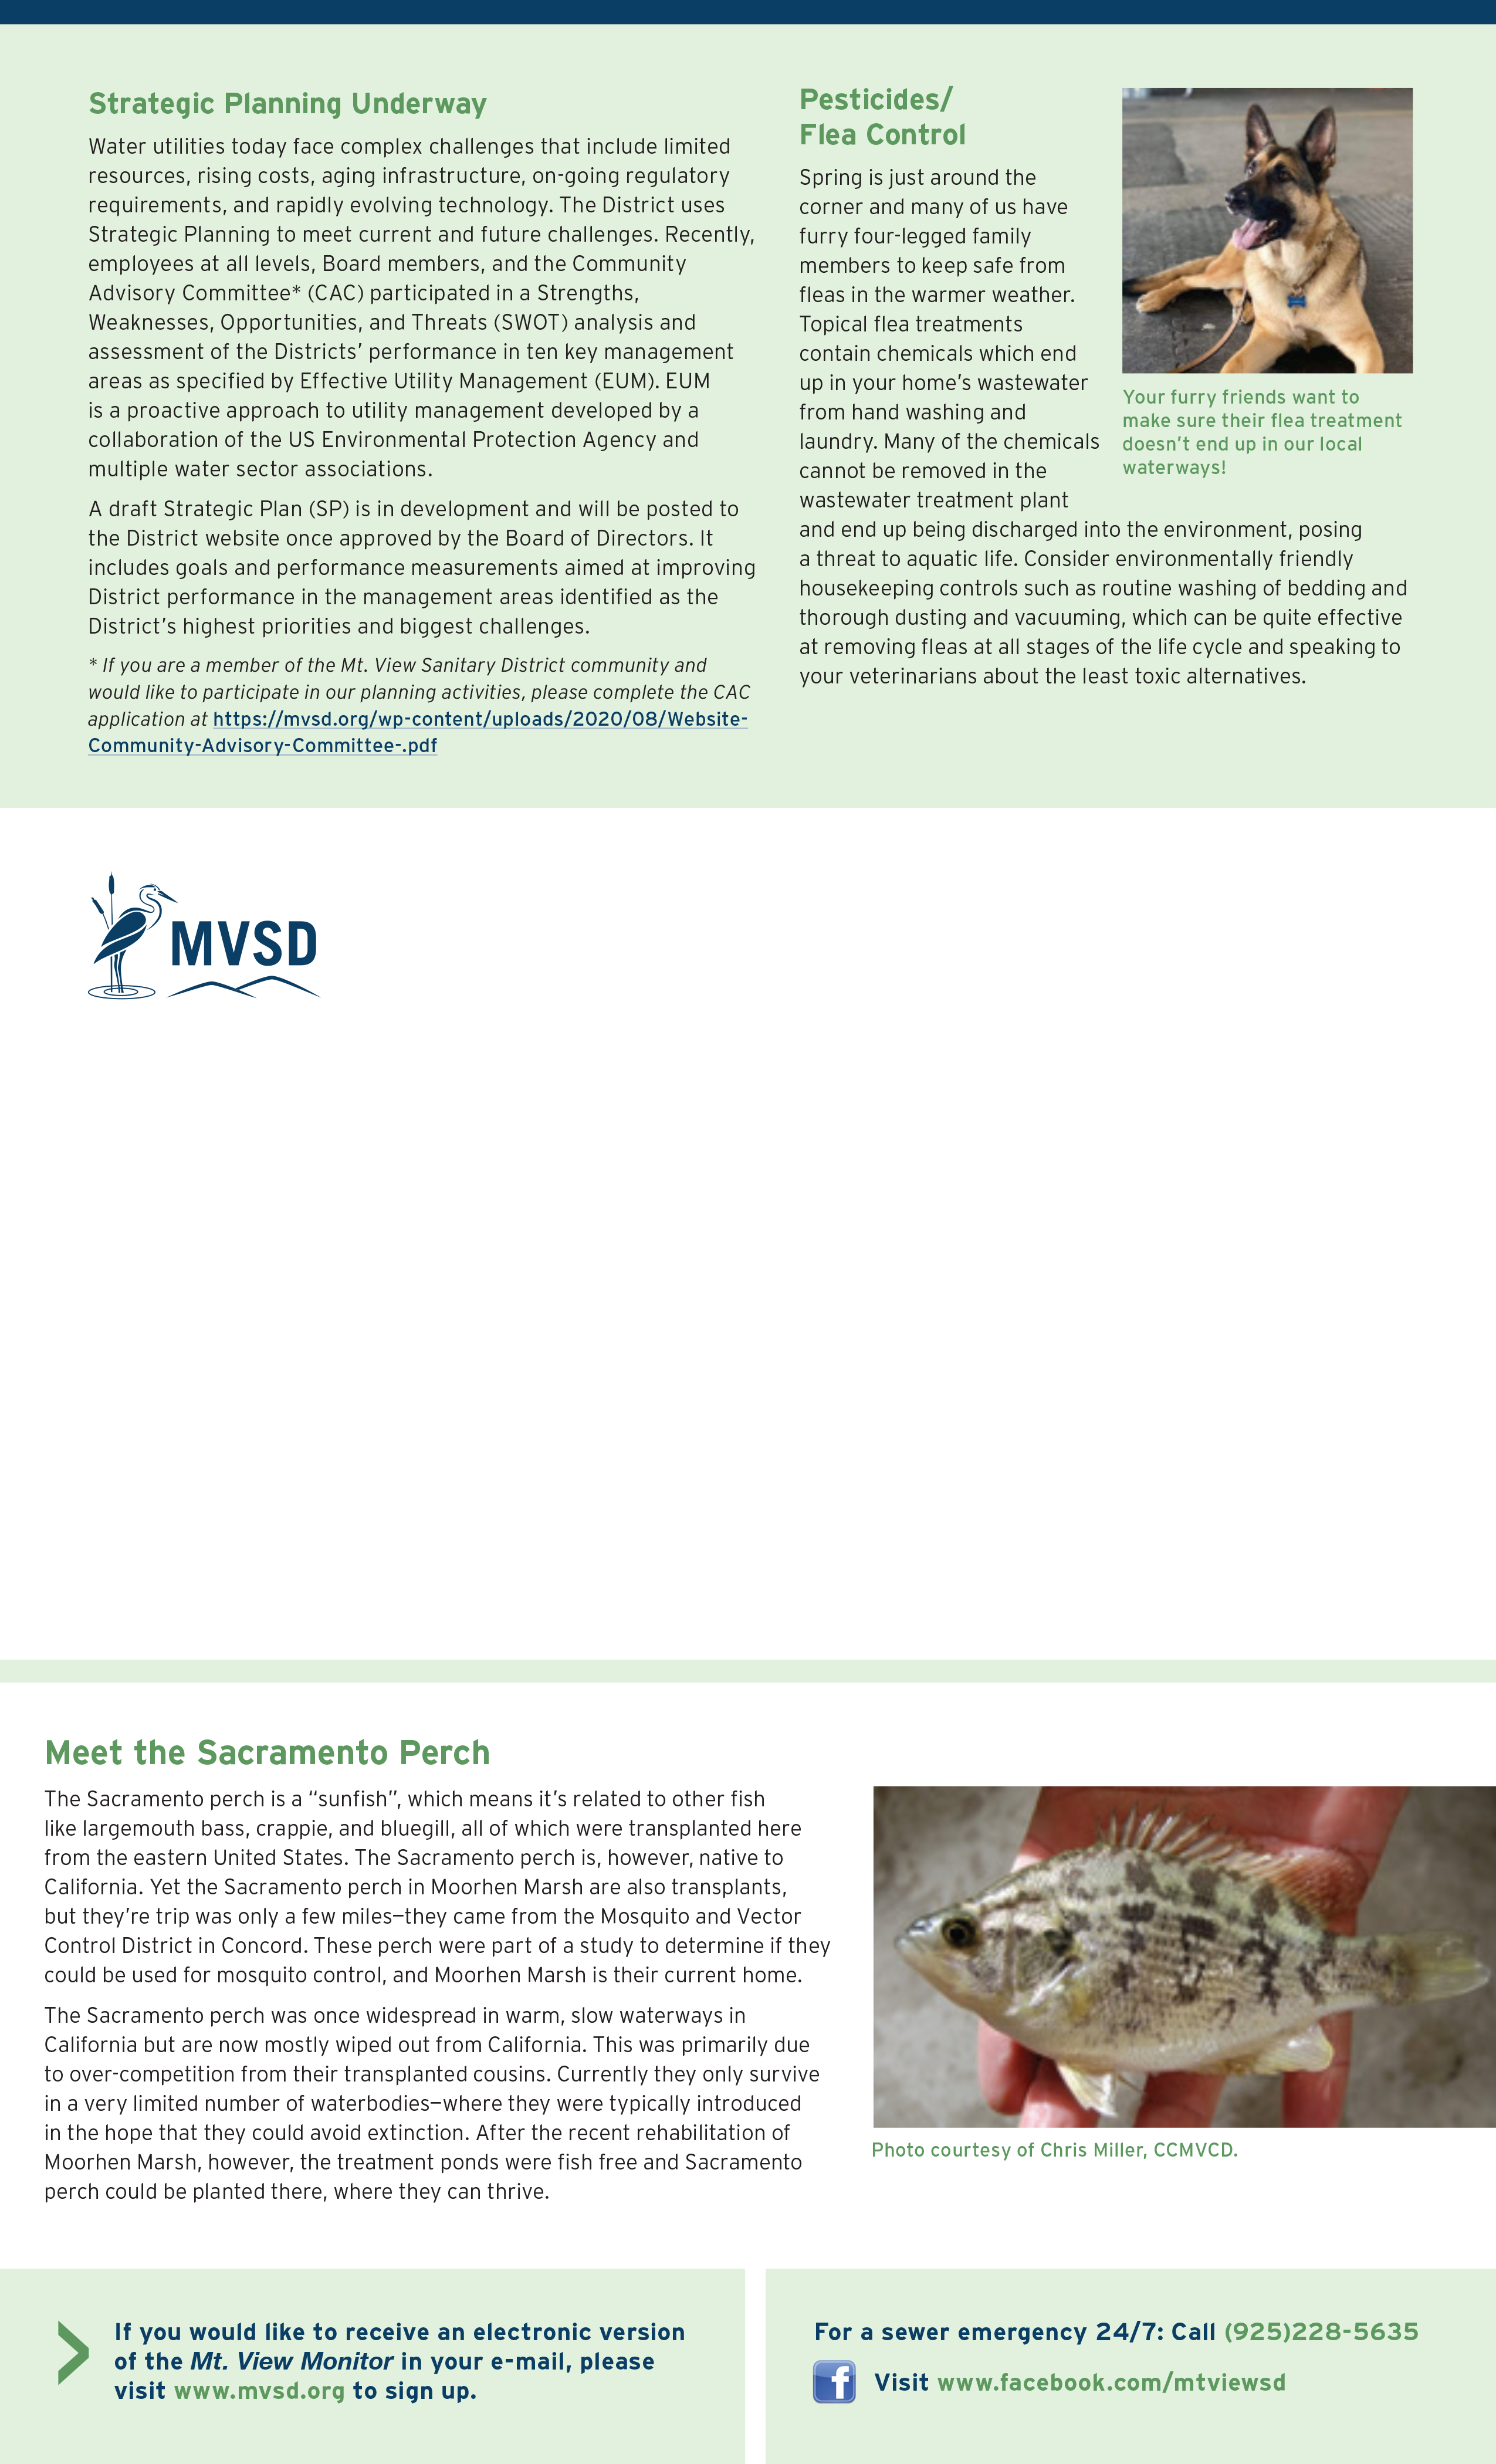 MVSD E-newsletter Page 2